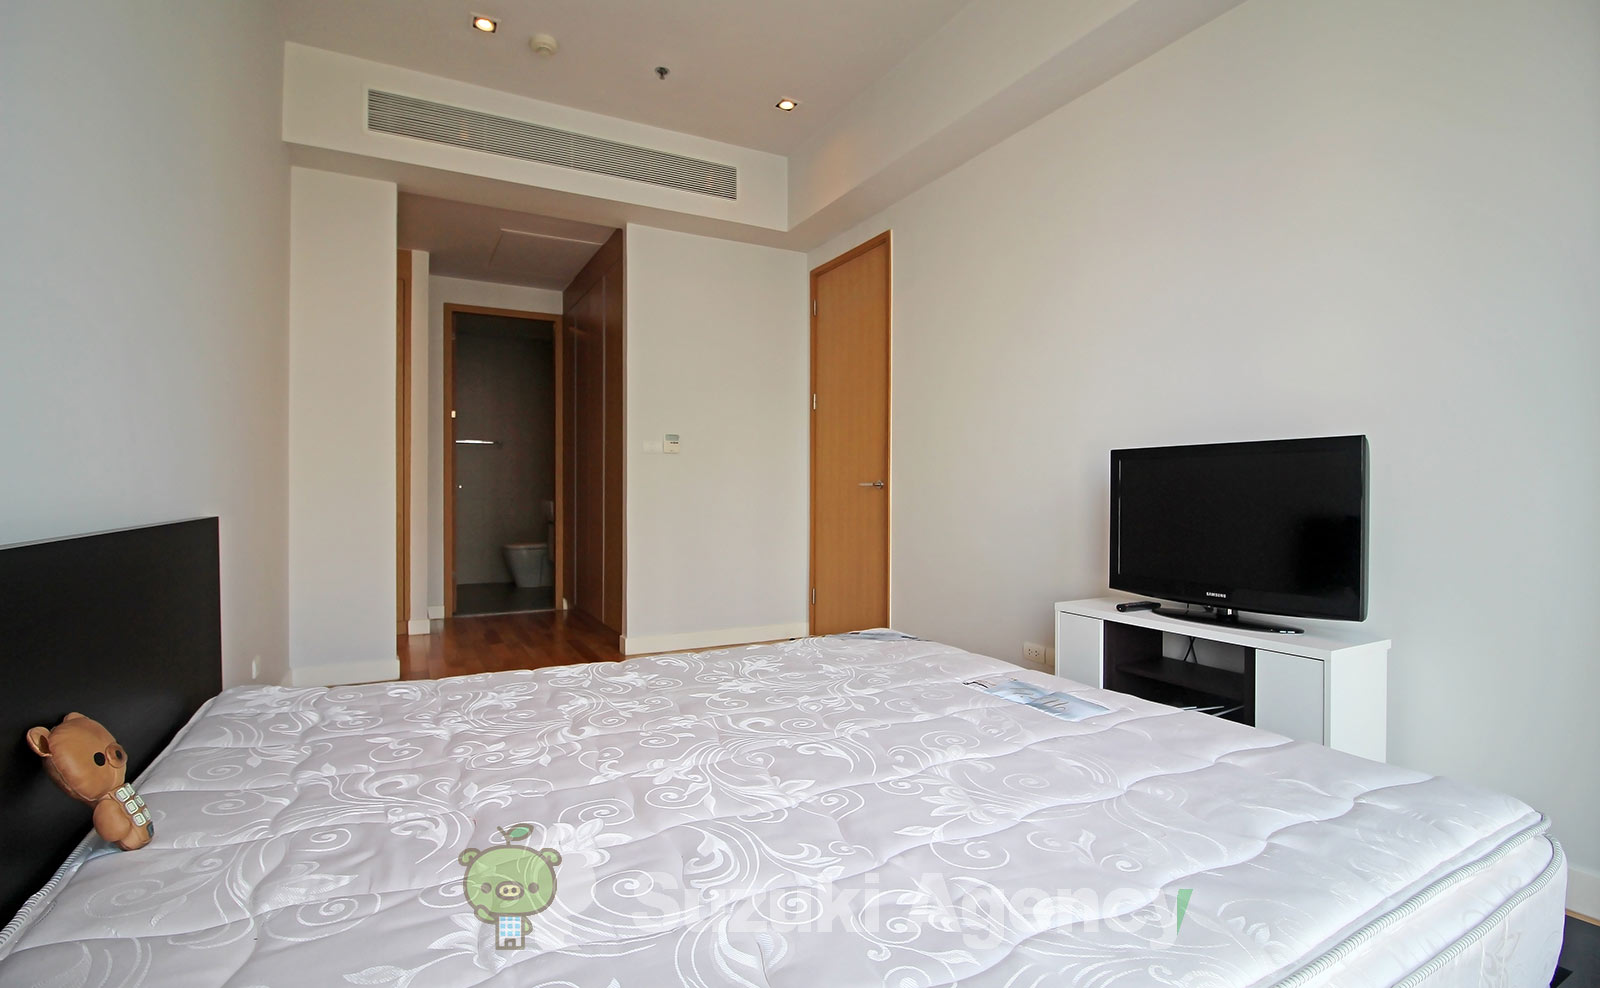 Millennium Residence:2Bed Room Photos No.8